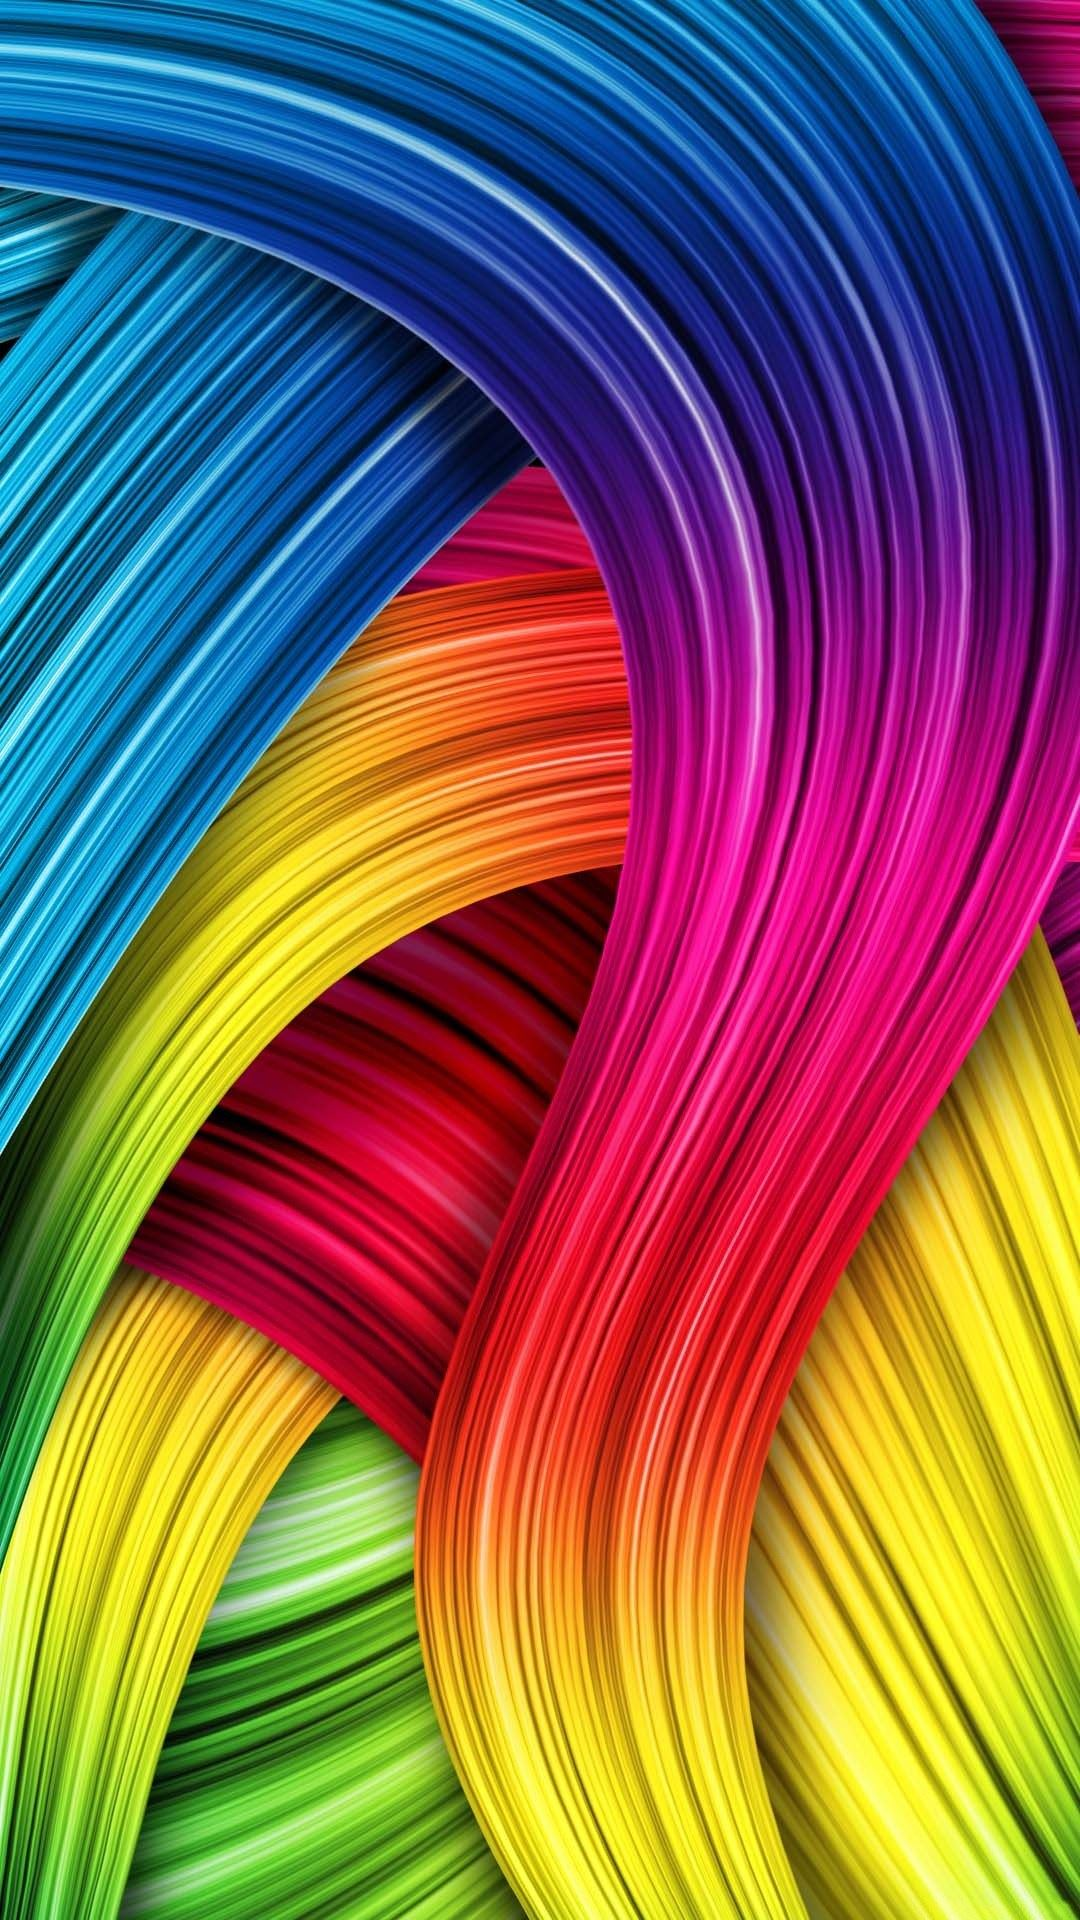 Free Download Samsung Phone Wallpapers For Mobile Cell Phone Backgrounds 1080x1920 For Your Desktop Mobile Tablet Explore 50 Wallpaper For Cell Phones Samsung Free Samsung Wallpaper Downloads Samsung Wallpapers